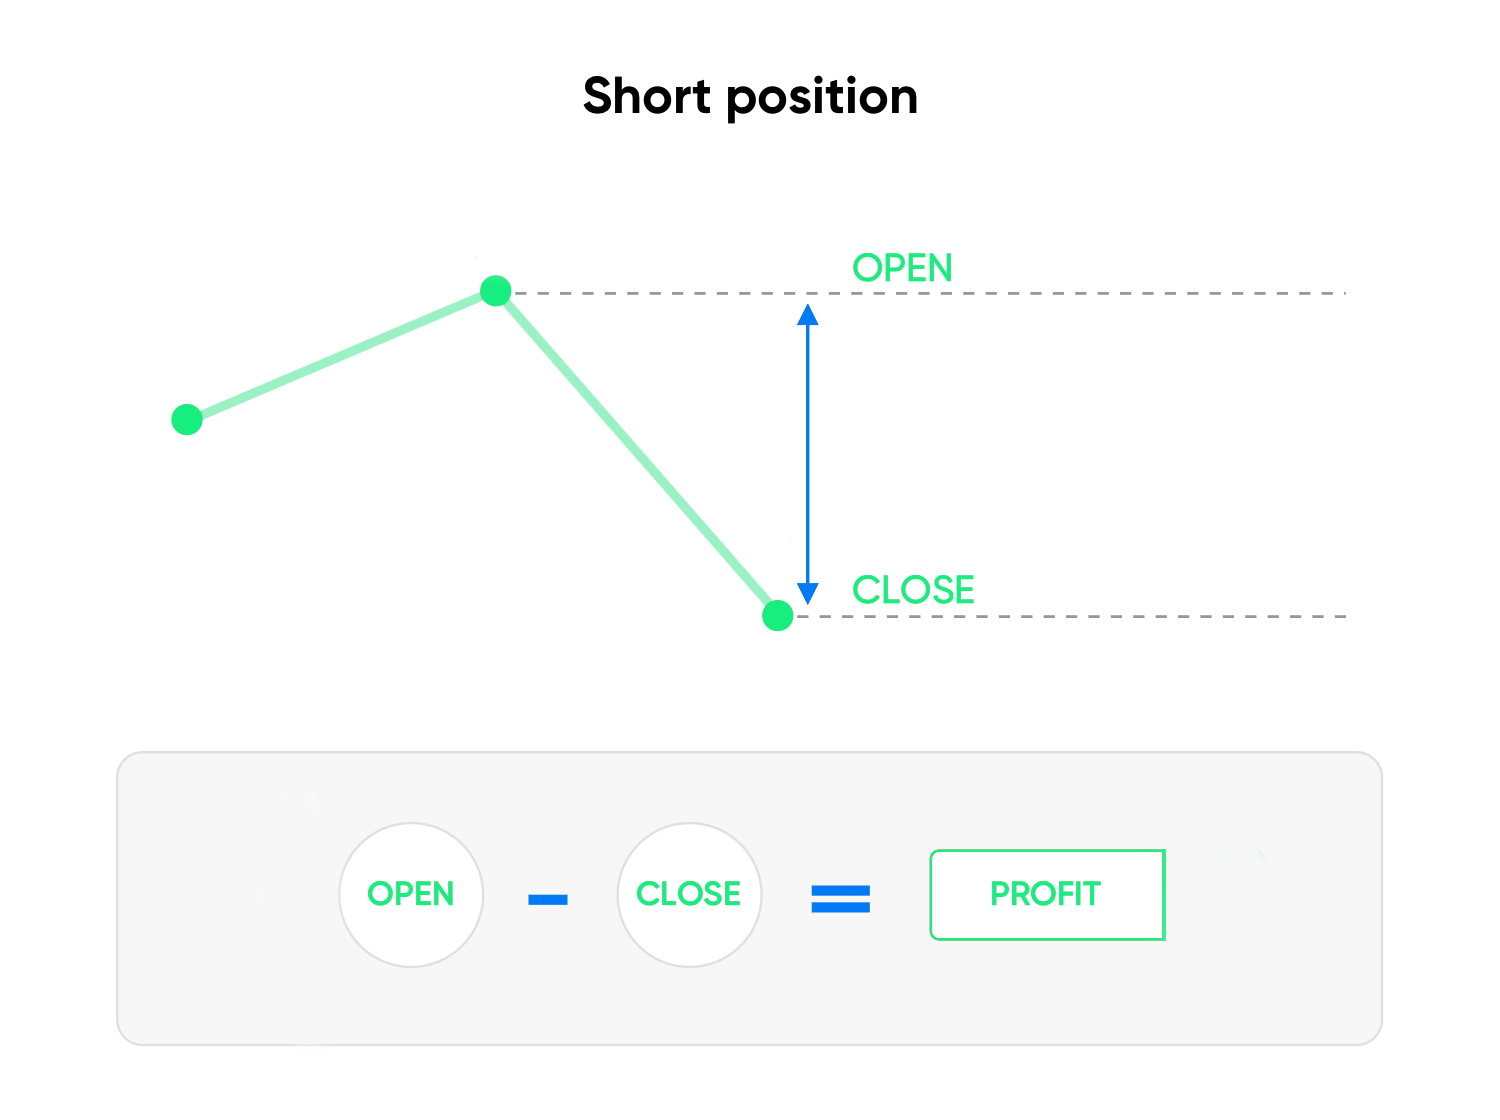 CFD SHORT POSITION